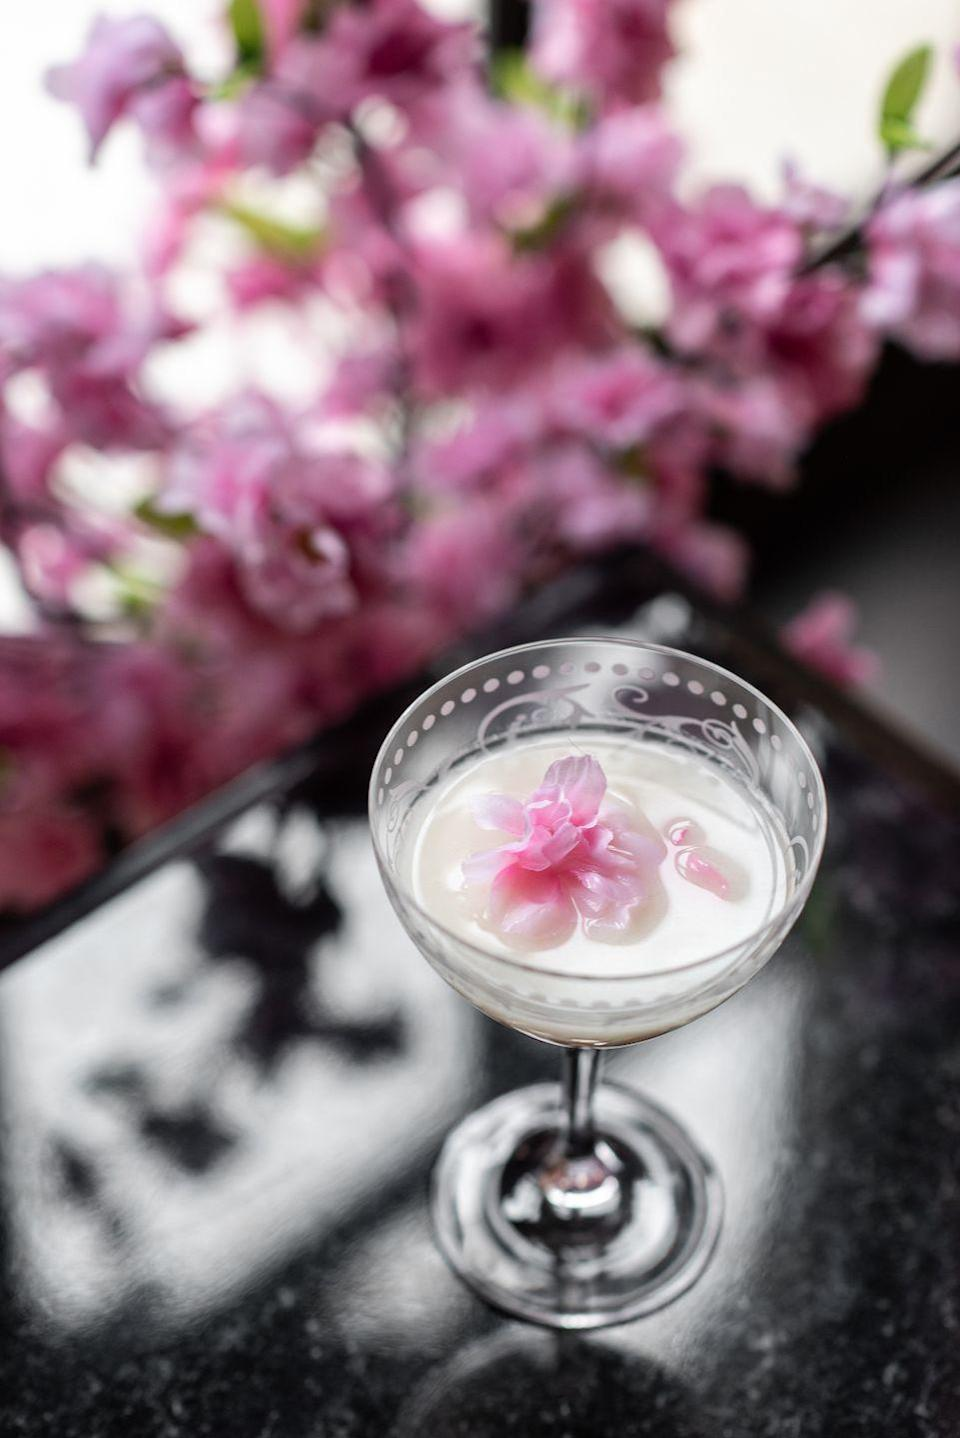 """<p>This delightful cocktail from St. Regis Bar at <a href=""""https://www.marriott.com/hotels/travel/wassx-the-st-regis-washington-dc/"""" rel=""""nofollow noopener"""" target=""""_blank"""" data-ylk=""""slk:The St. Regis Washington, D.C."""" class=""""link rapid-noclick-resp"""">The St. Regis Washington, D.C.</a> is worth the effort to make, and serves enough for an intimate garden party, as it makes a gallon. Use garnishes from your garden to create a drink as beautiful as it is delicious.</p><p><strong>Ingredients:</strong></p><p>1 quart plum brandy</p><p>1 quart Tanqueray No.10 (or other London dry gin)</p><p>1/2 quart apricot liquor</p><p>2 quarts hibiscus tea</p><p>1 quart lemon juice</p><p>1/2 quart strawberry syrup</p><p>2 quarts milk of choice (we advise steering clear of fat-free options)</p><p>sliced strawberries, sprigs of mint, dried orange slices, brandy cherries, for garnish (optional)</p><p><strong>Directions:</strong></p><ol><li>Add plum brandy, gin, apricot liquor, hibiscus tea, lemon juice, and strawberry syrup into a container and mix. </li><li>Pour the mixture gentle over a container filled with two quarts of milk and let sit for 24 hours. You can either strain mixture carefully into a chinois or layer coffee filters in a strainer. Let this drip overnight. Repeat 3-4 times.</li><li>Pour mixture over ice in highball glasses and serve cold.</li></ol>"""